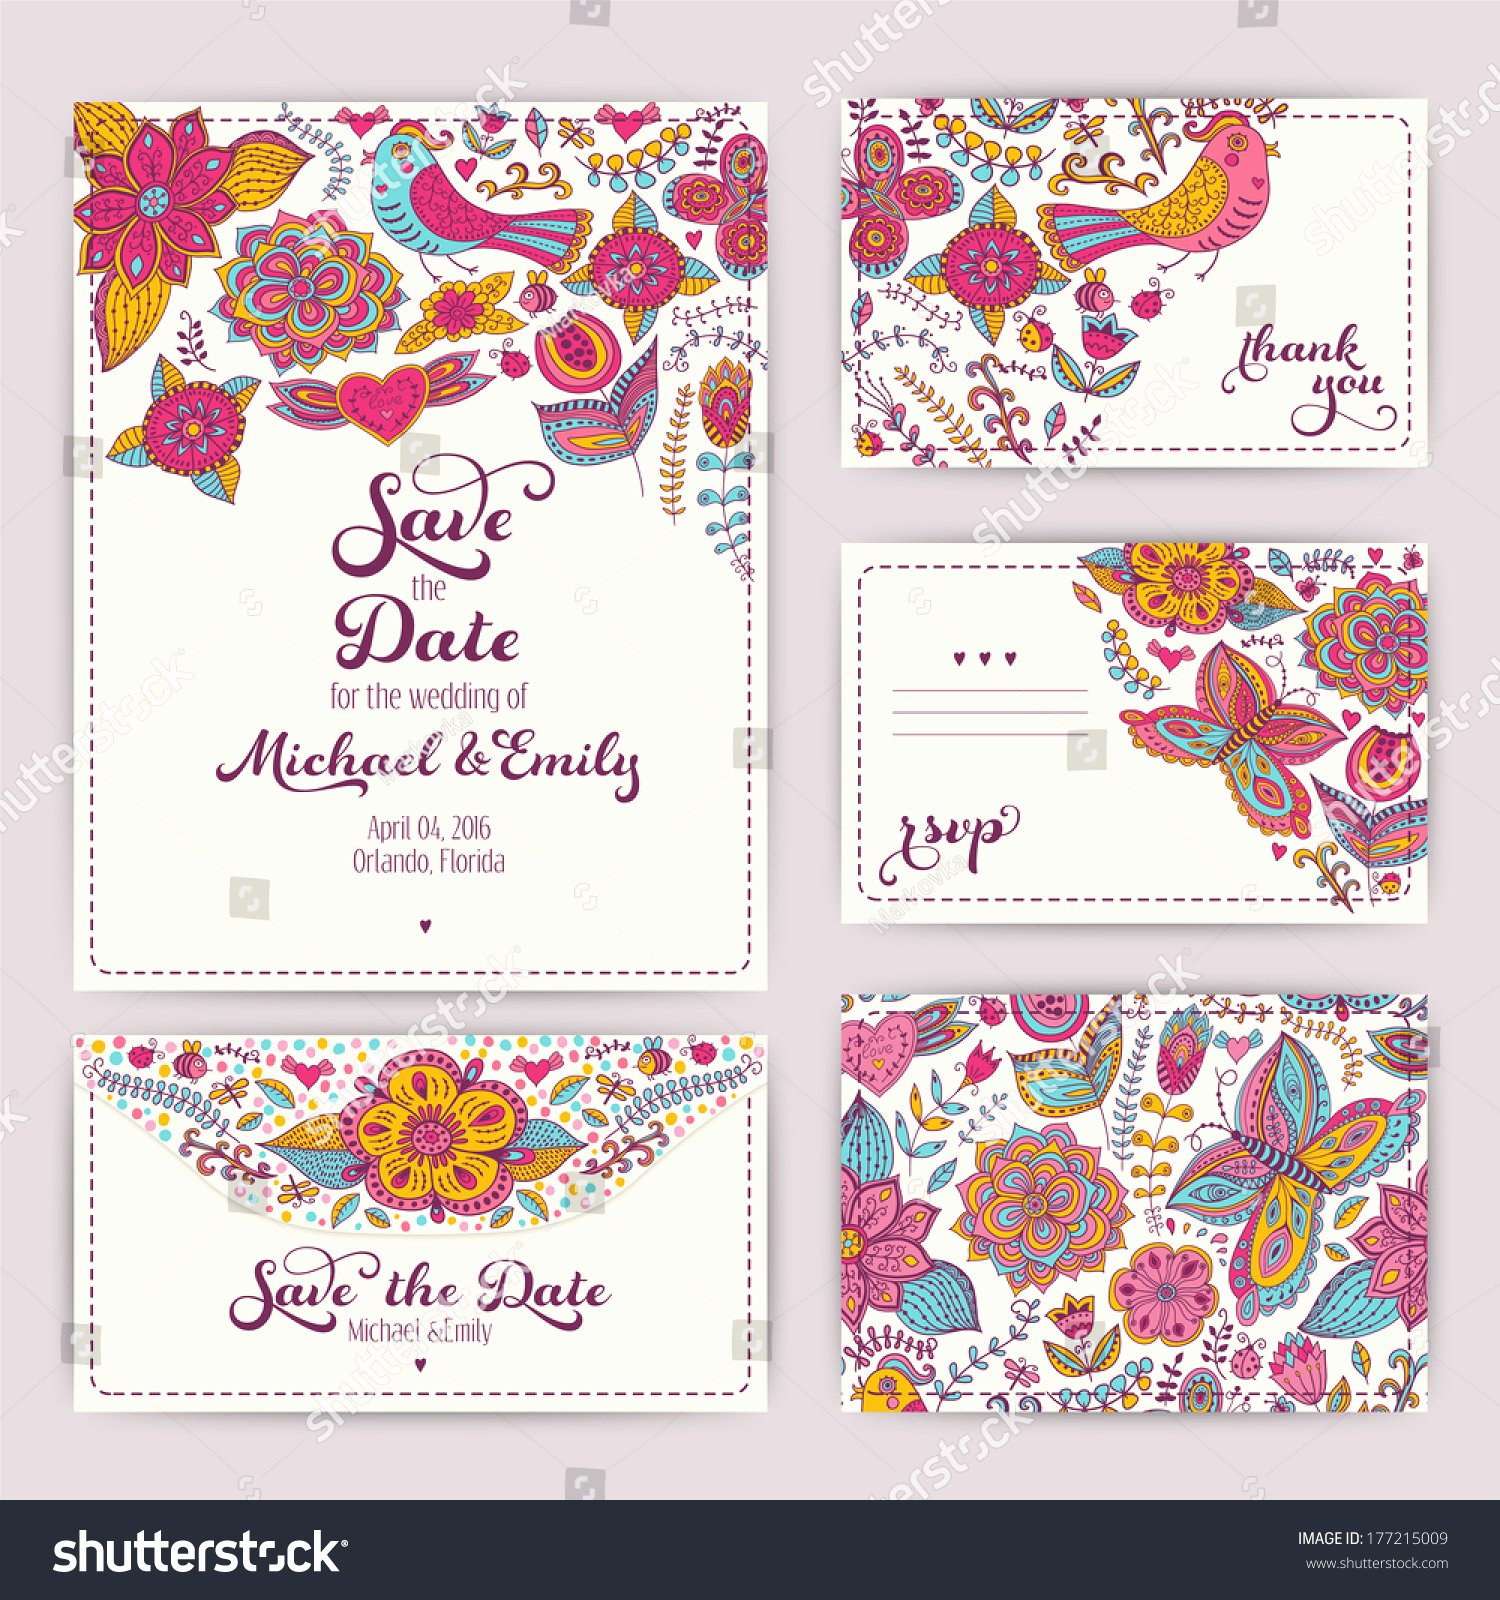 Printable Wedding Invitation Template Invitation